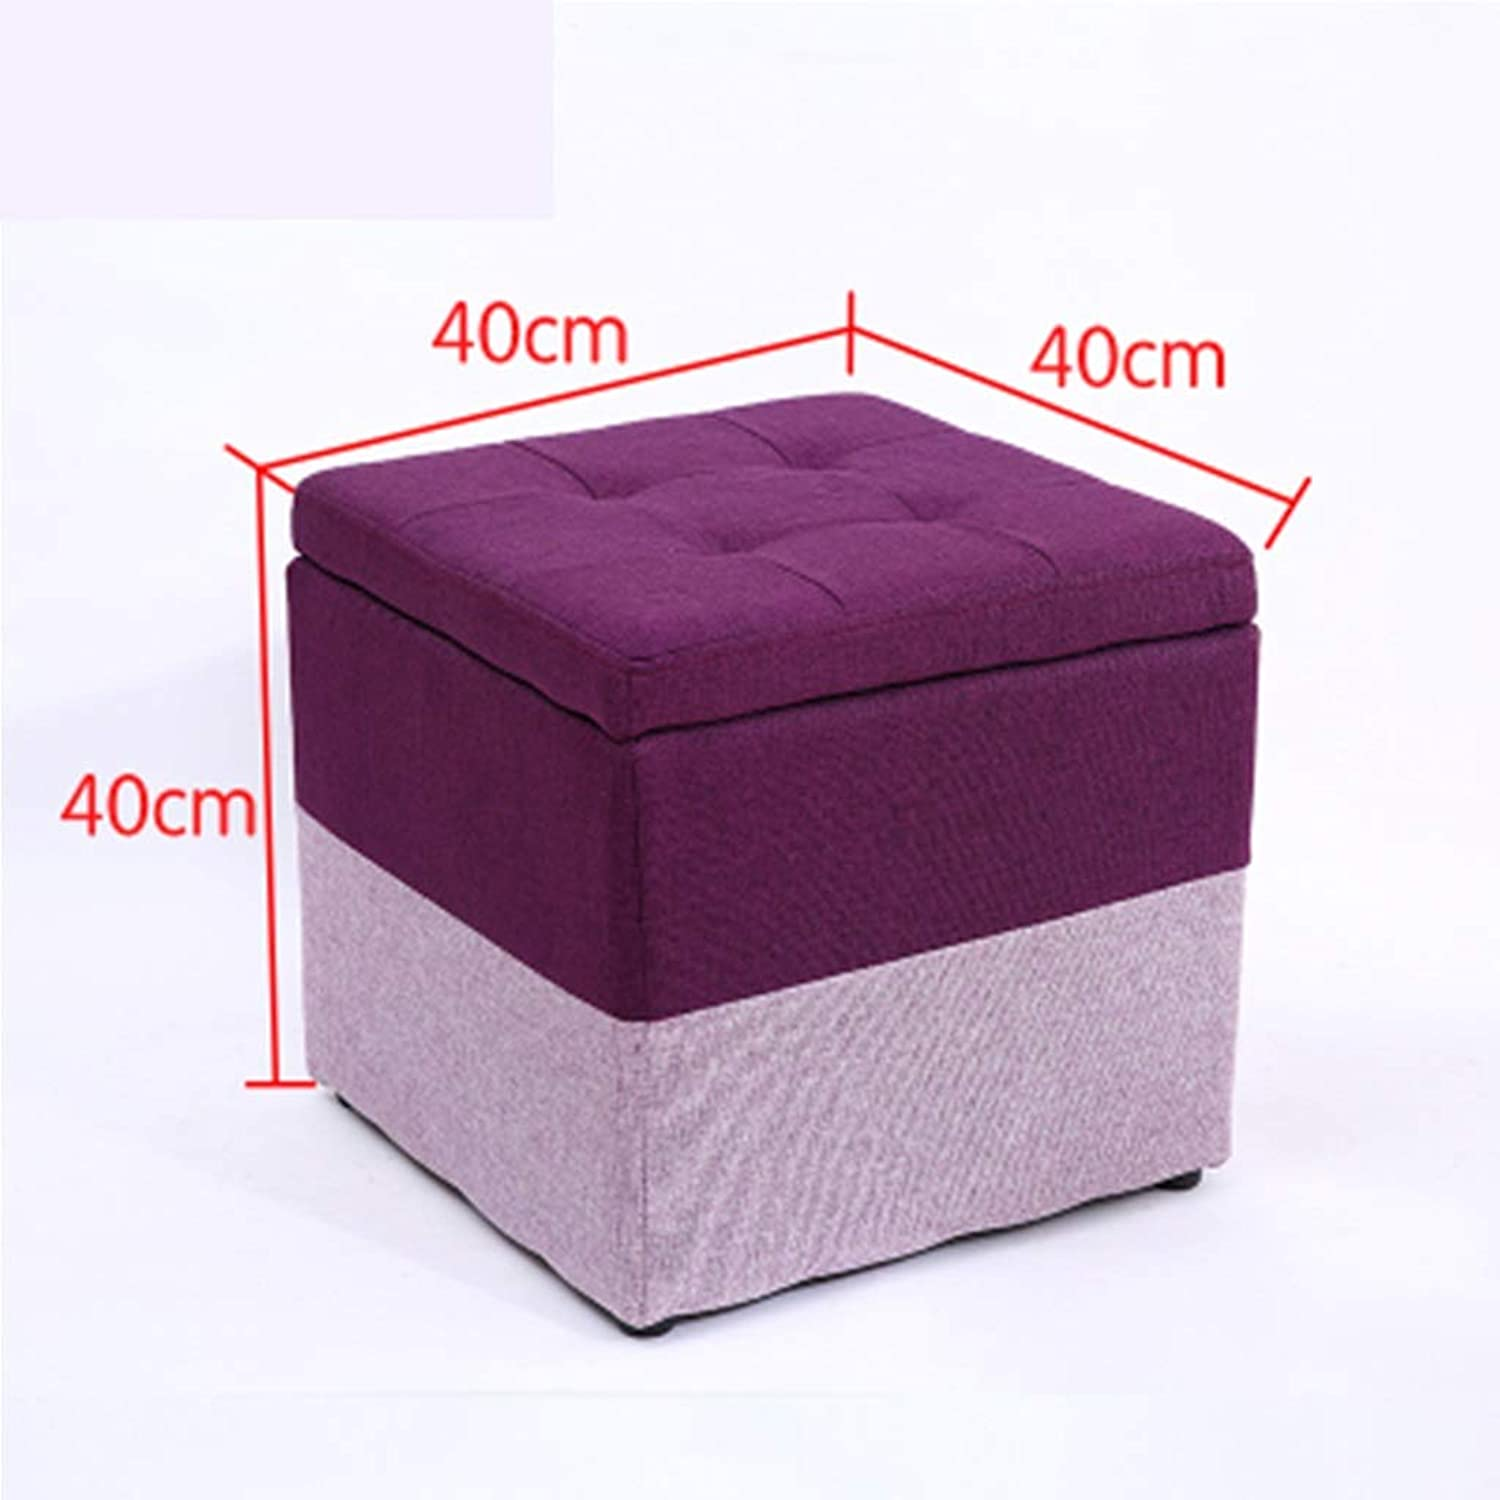 RHHWJJXB Solid Wood Stool Fabric Change shoes Bench Storage Stool Living Room Coffee Table Sofa Stool Home Creative Large Storage Stool (color   B)